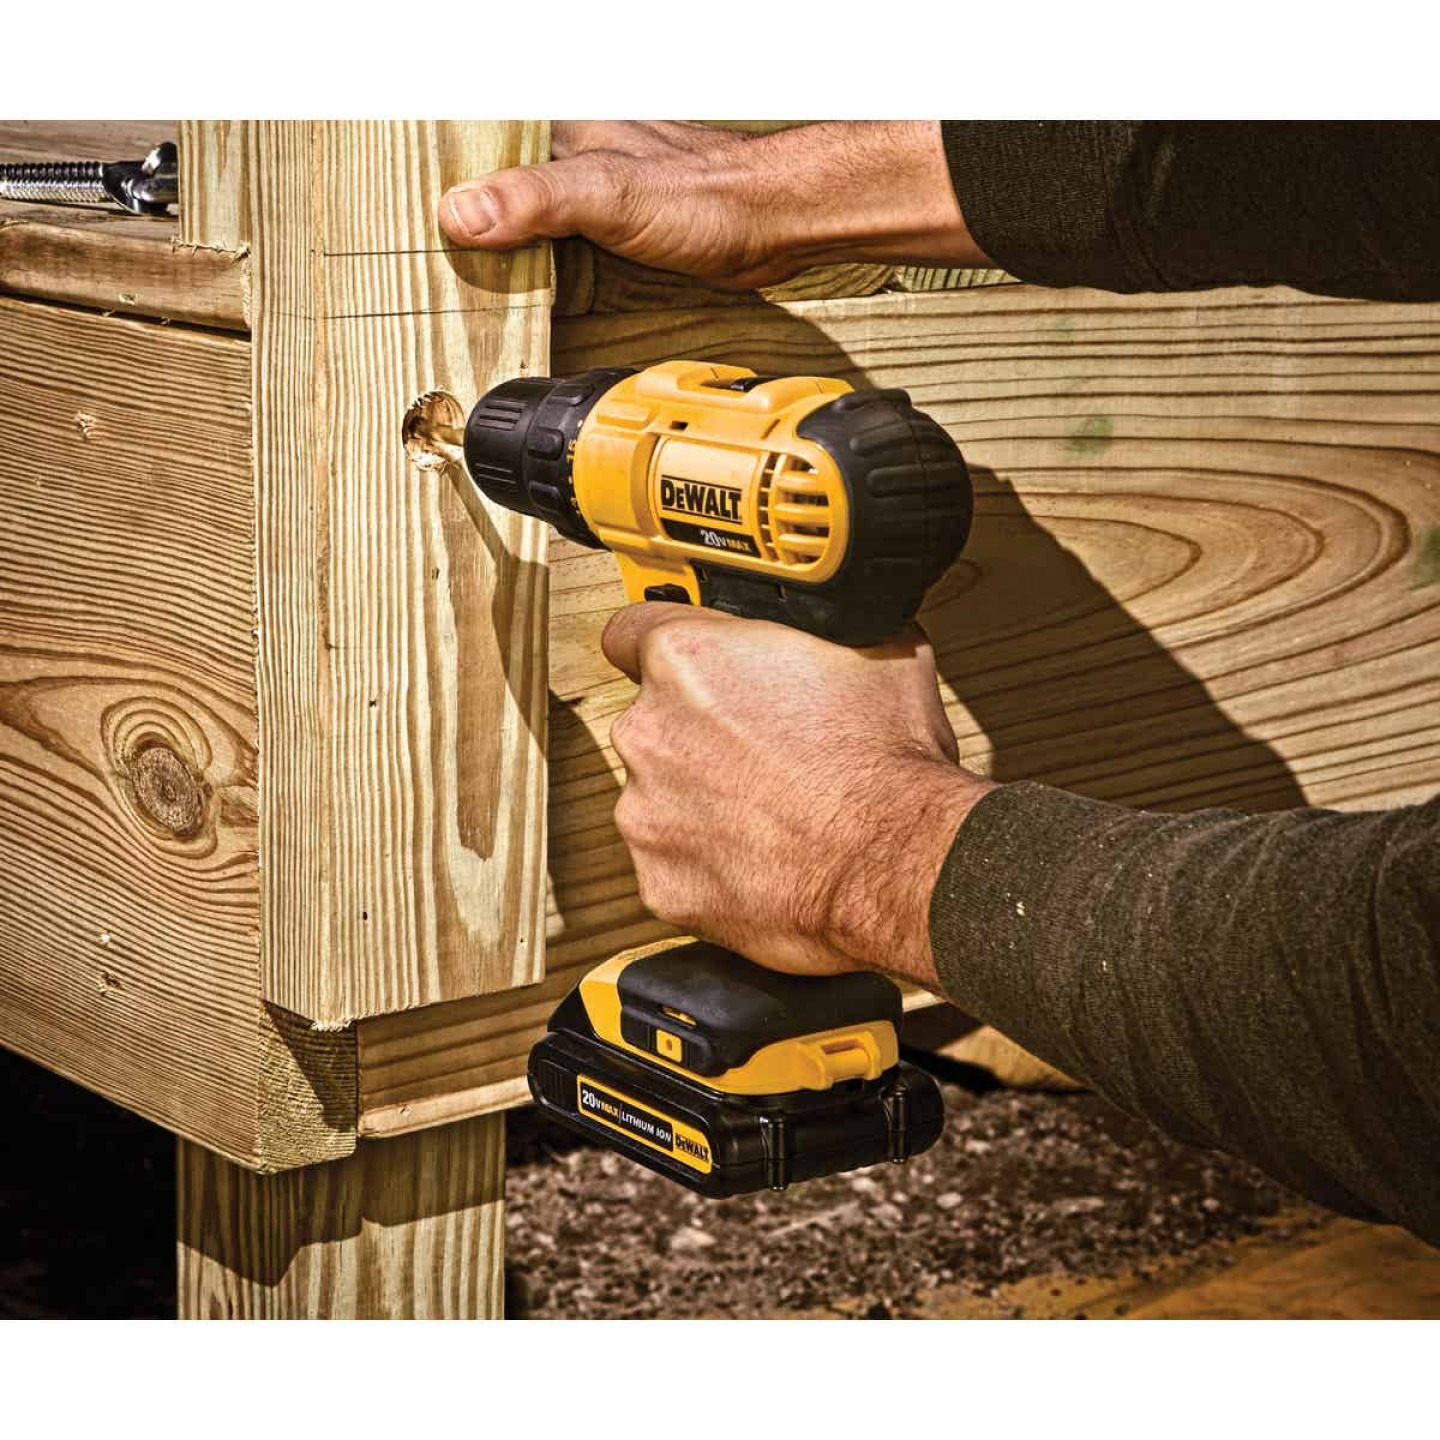 DeWalt 20 Volt MAX Lithium-Ion 1/2 In. Cordless Drill Kit Image 3